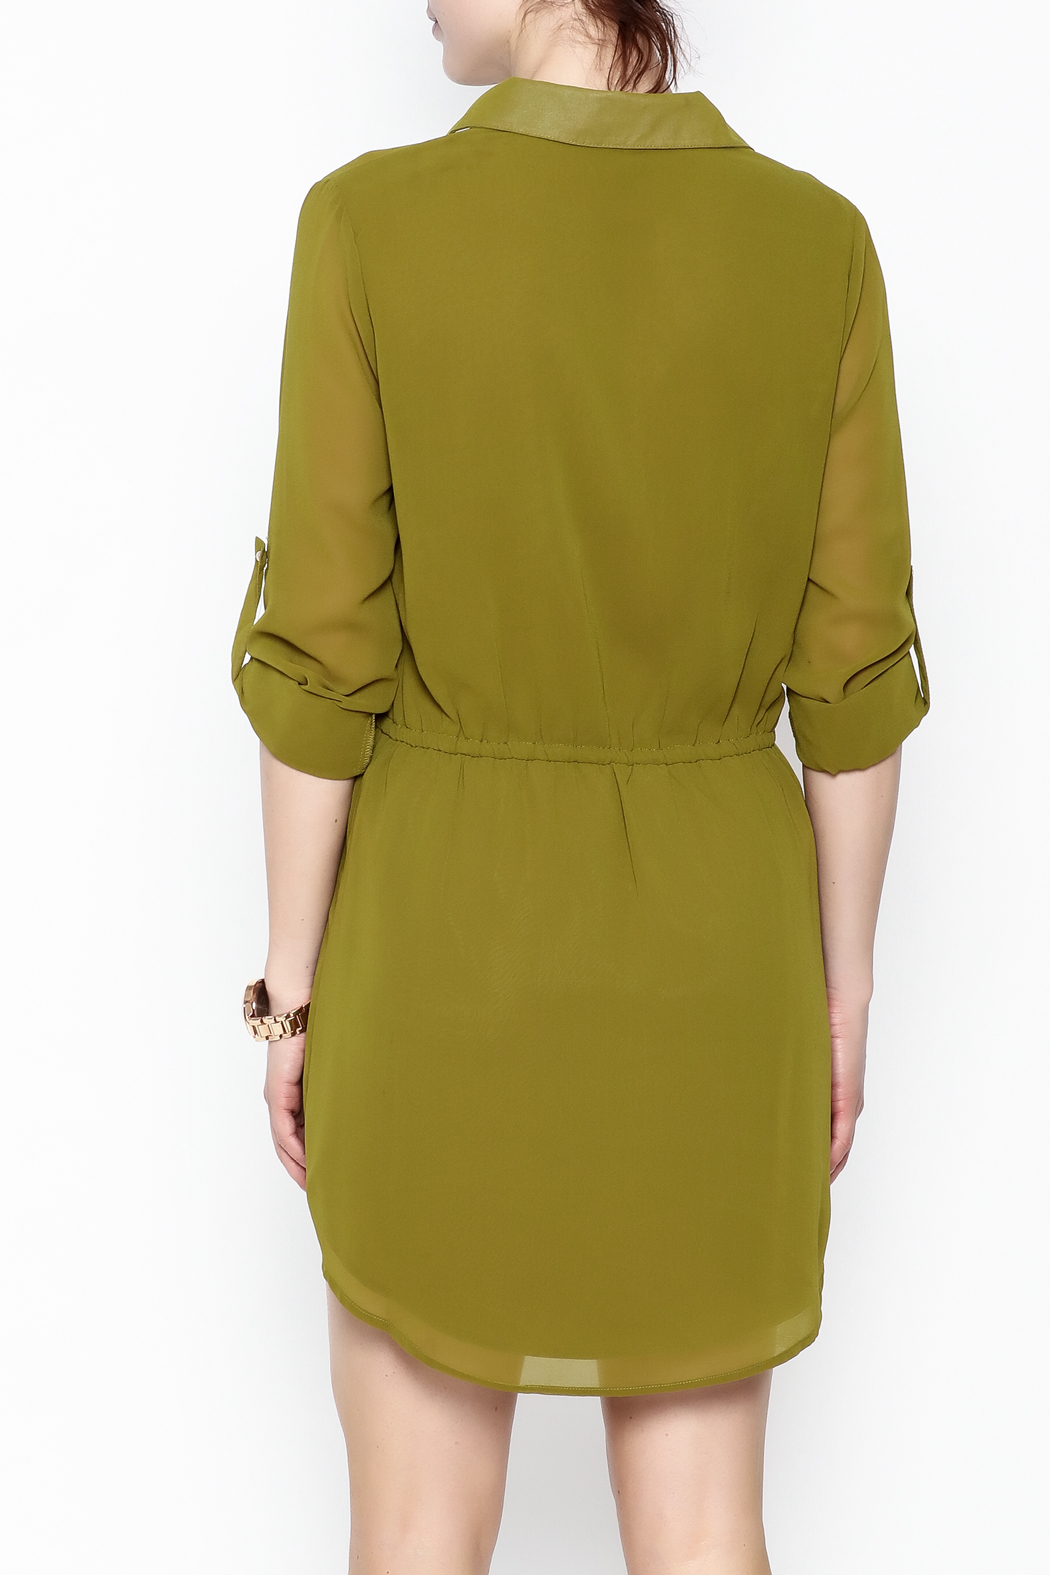 Pure Hype Green Tunic Dress - Back Cropped Image